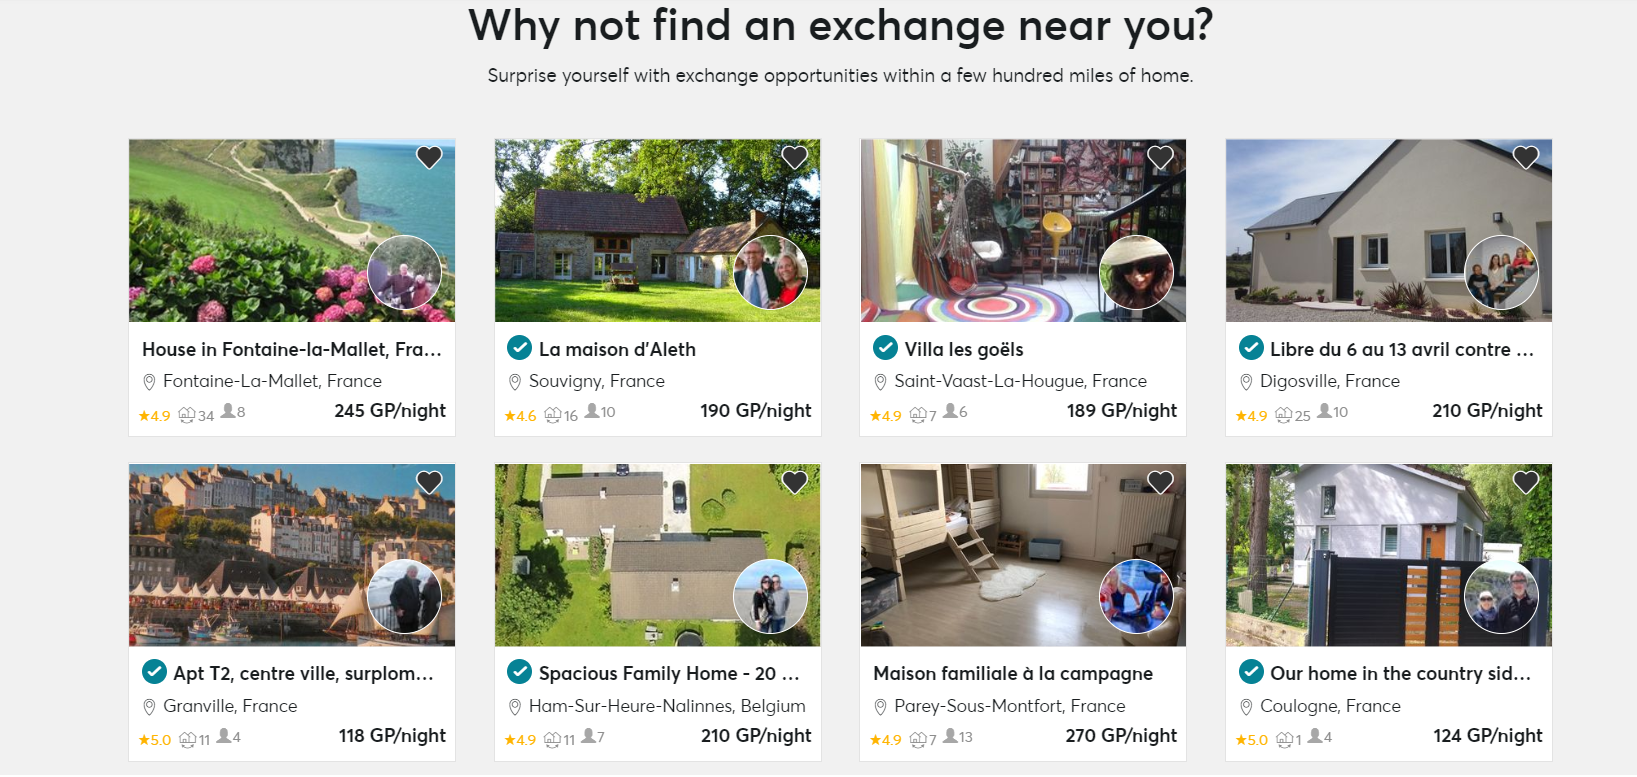 We-are-here-to-help-you-plan-your-next-homeexchange_3